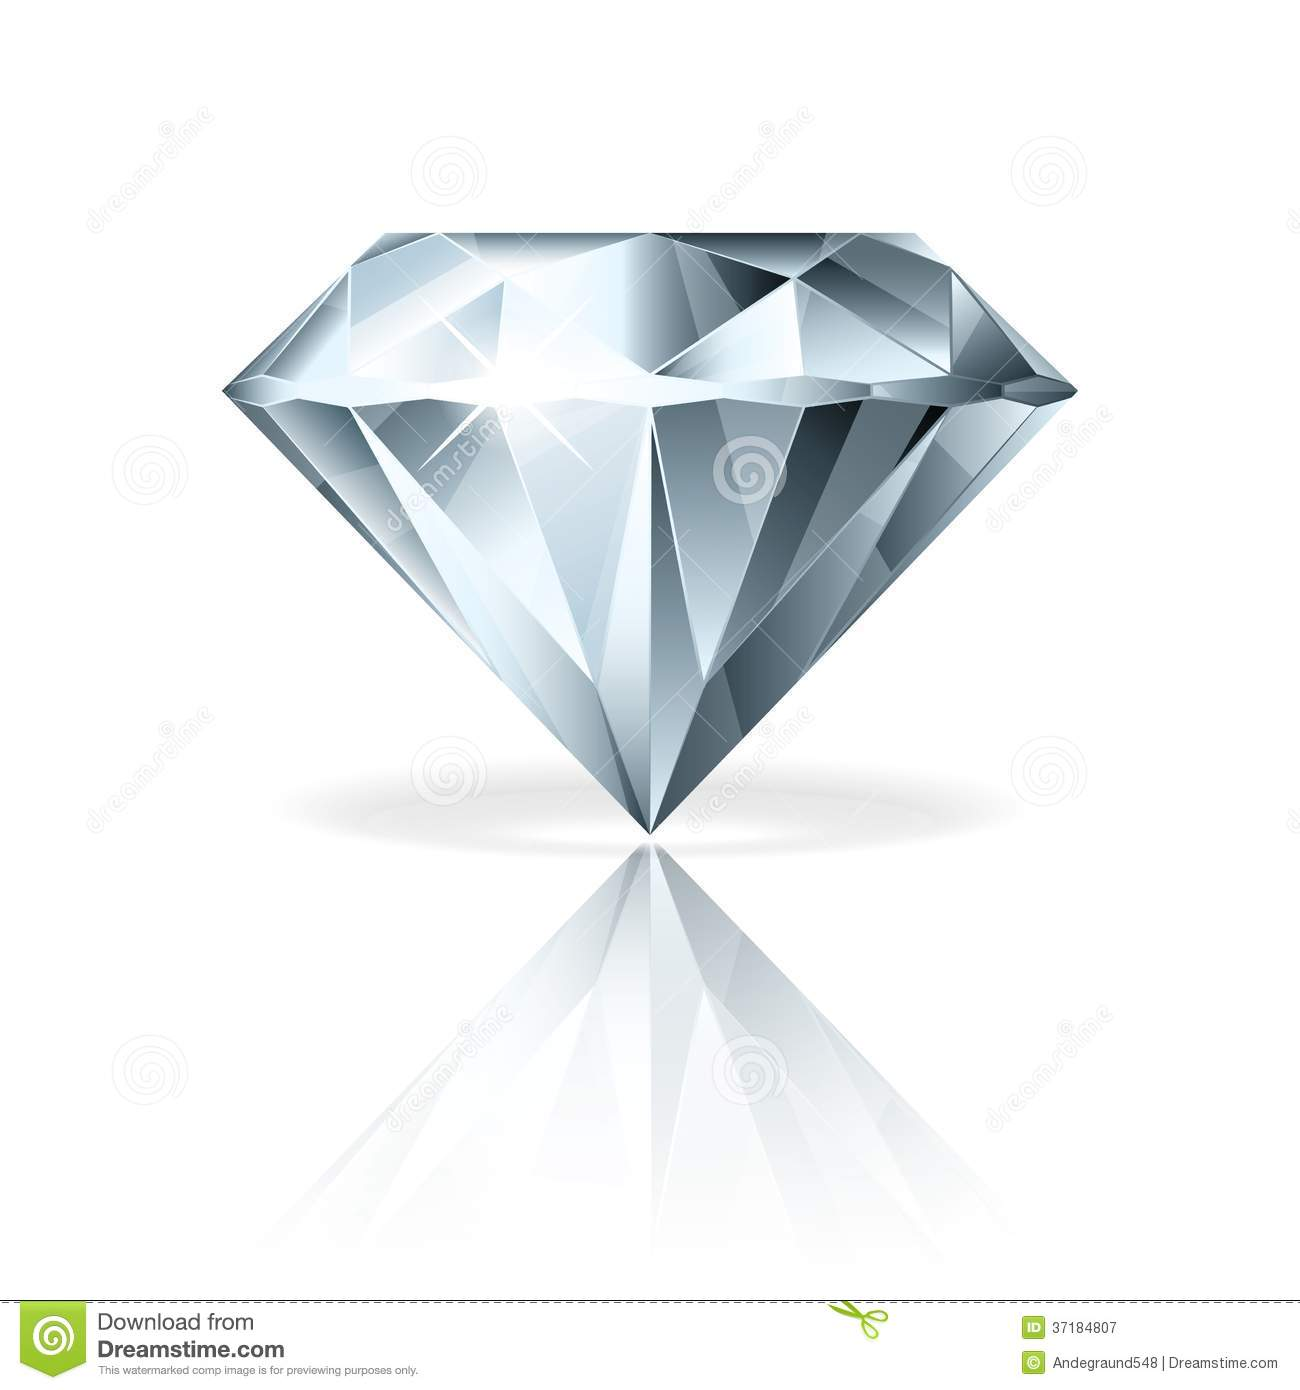 diamond vector free download - photo #22